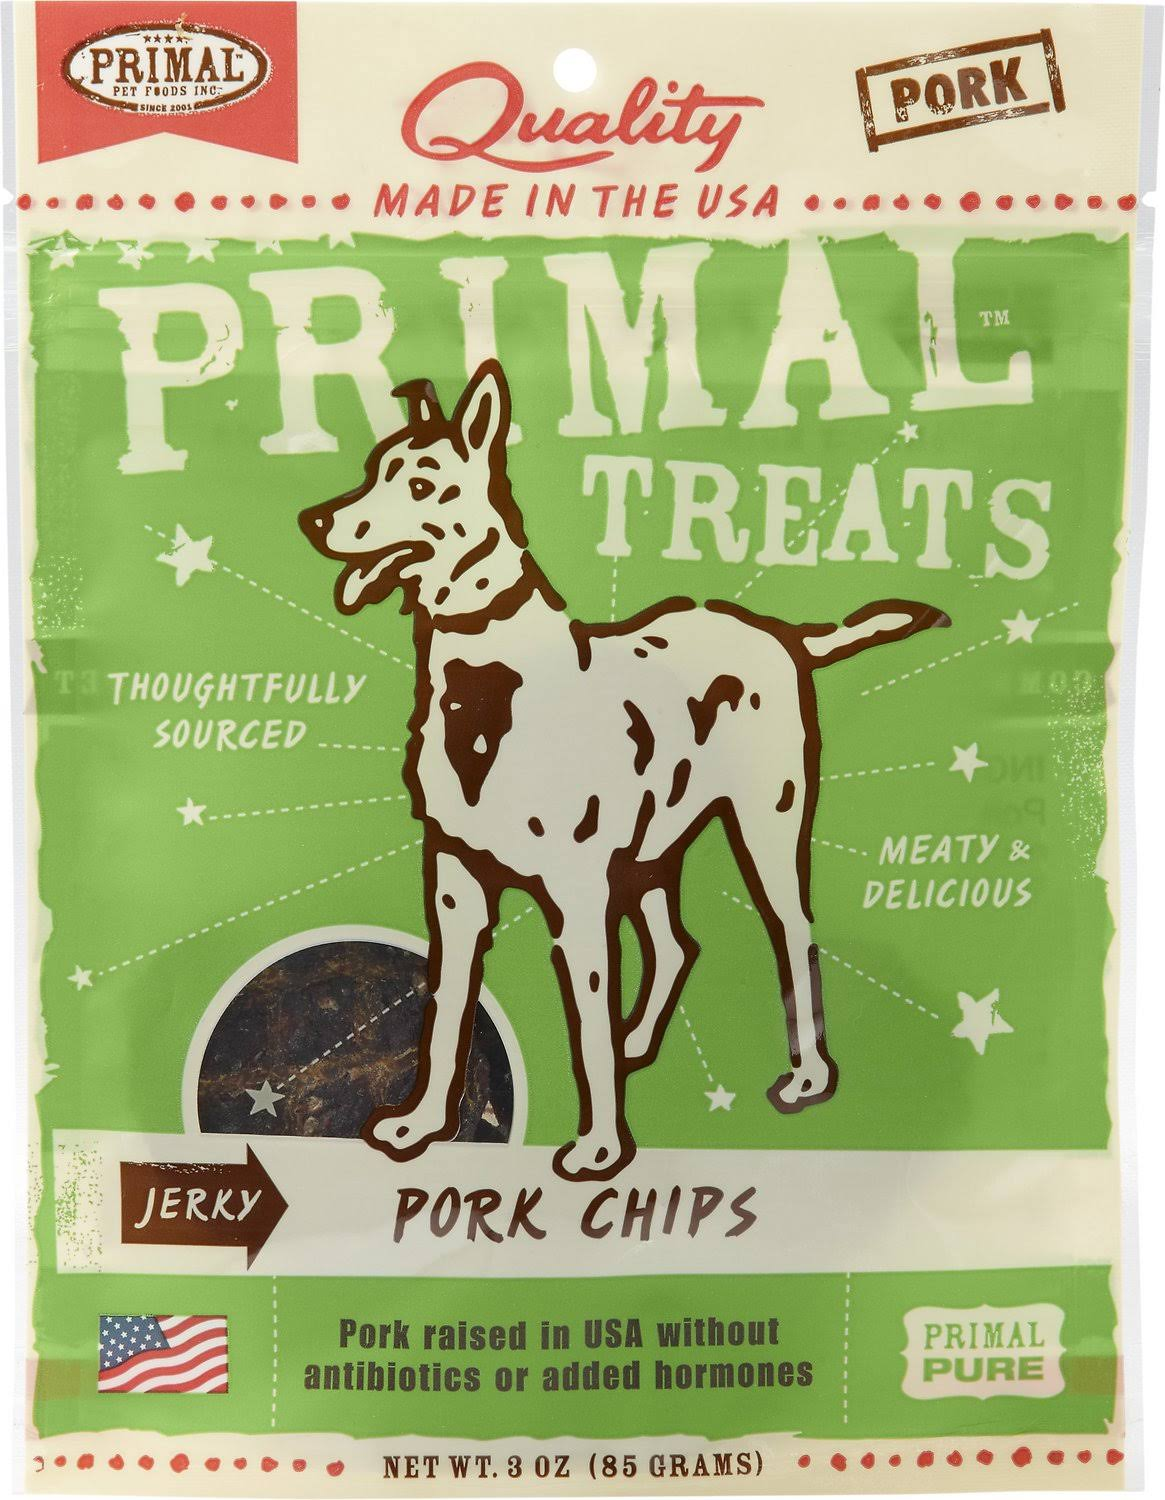 Primal Pet Foods Jerky Chips Treats - Pork, 85g